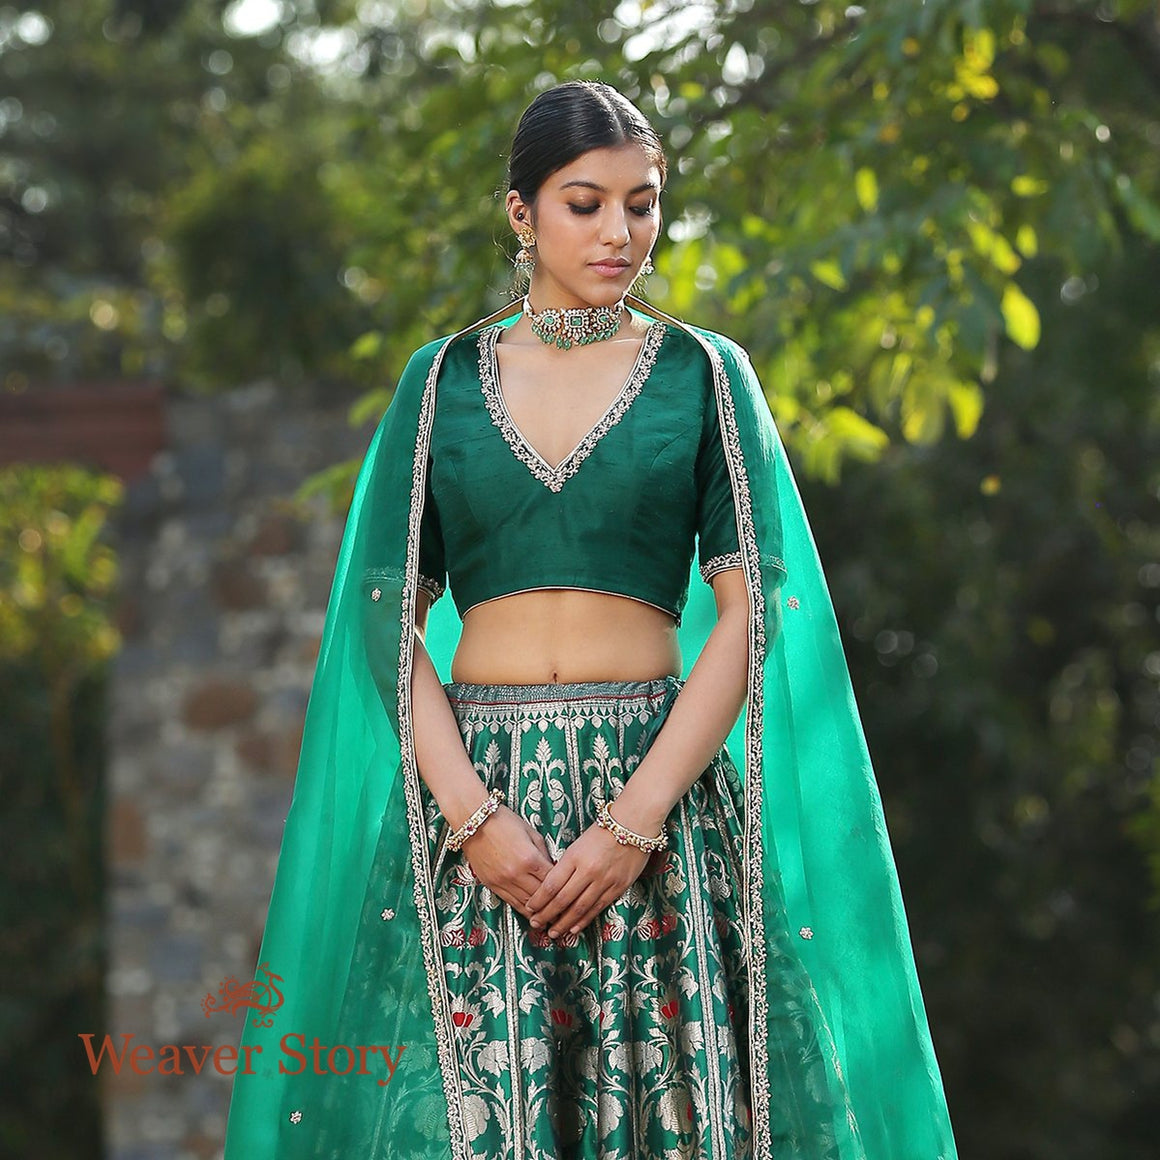 Handwoven Emerald Green Banarasi Lehenga with Red Meenakari